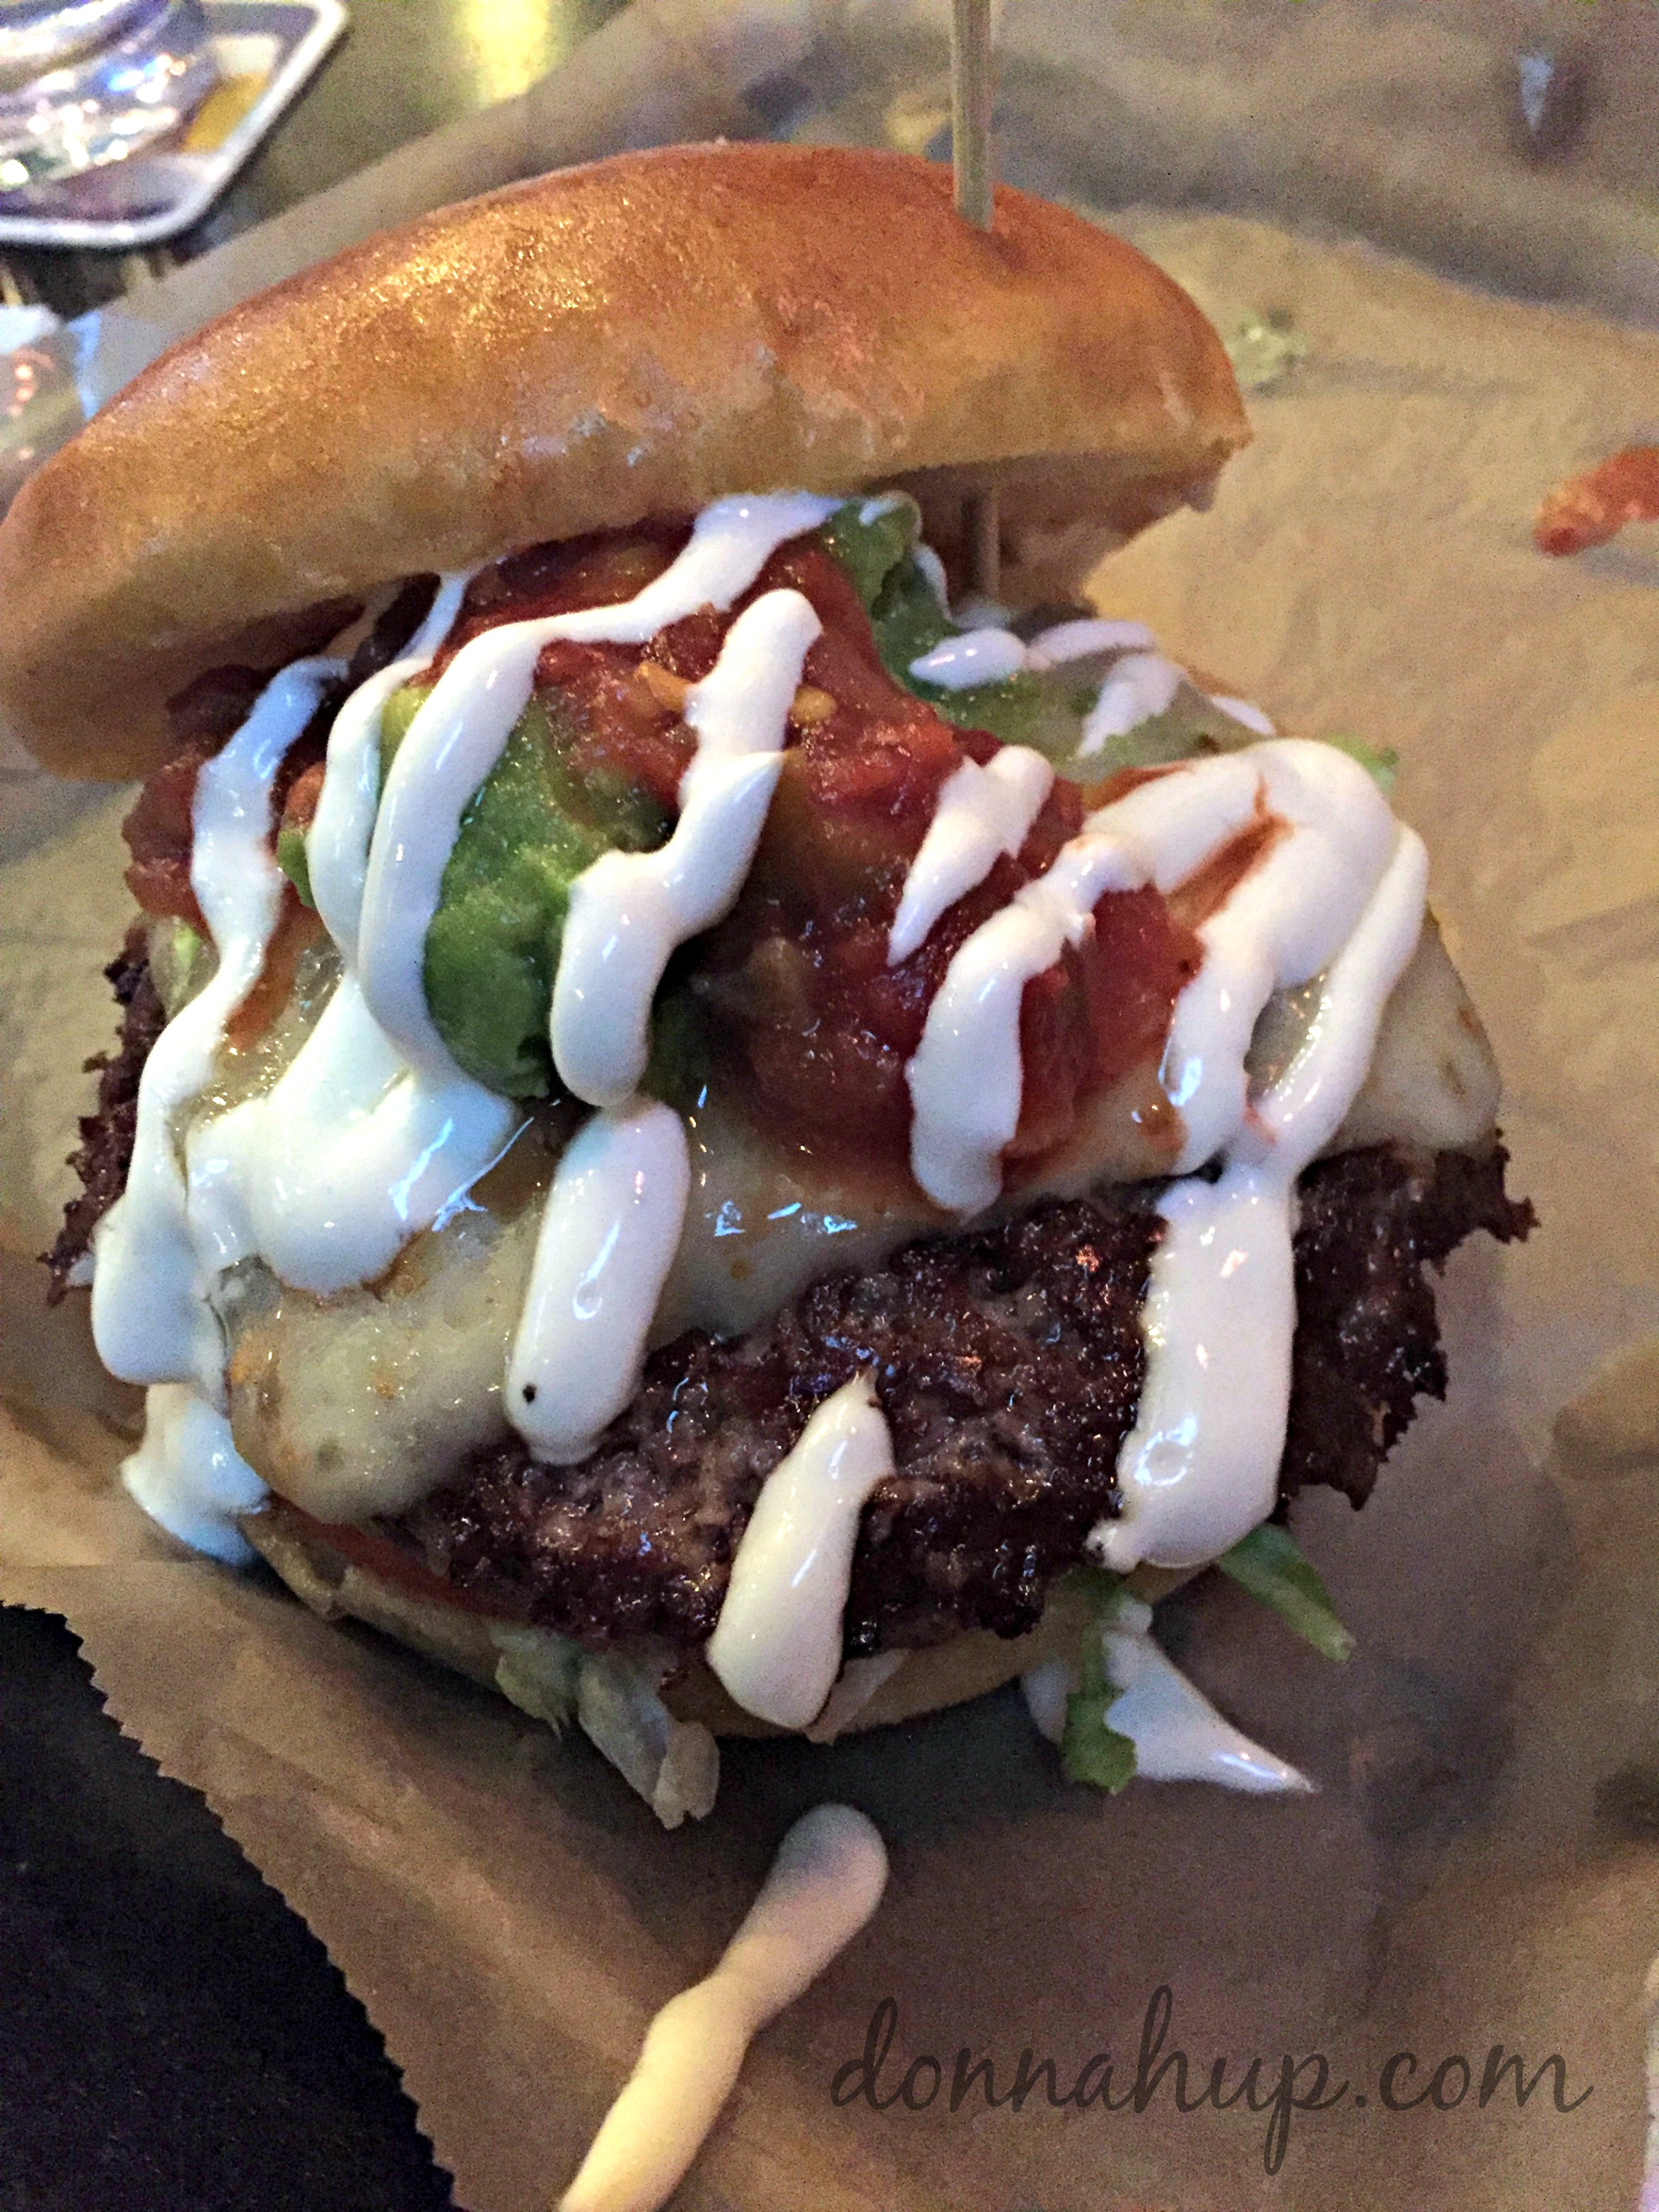 You'll love the Burgers at Taphouse 41